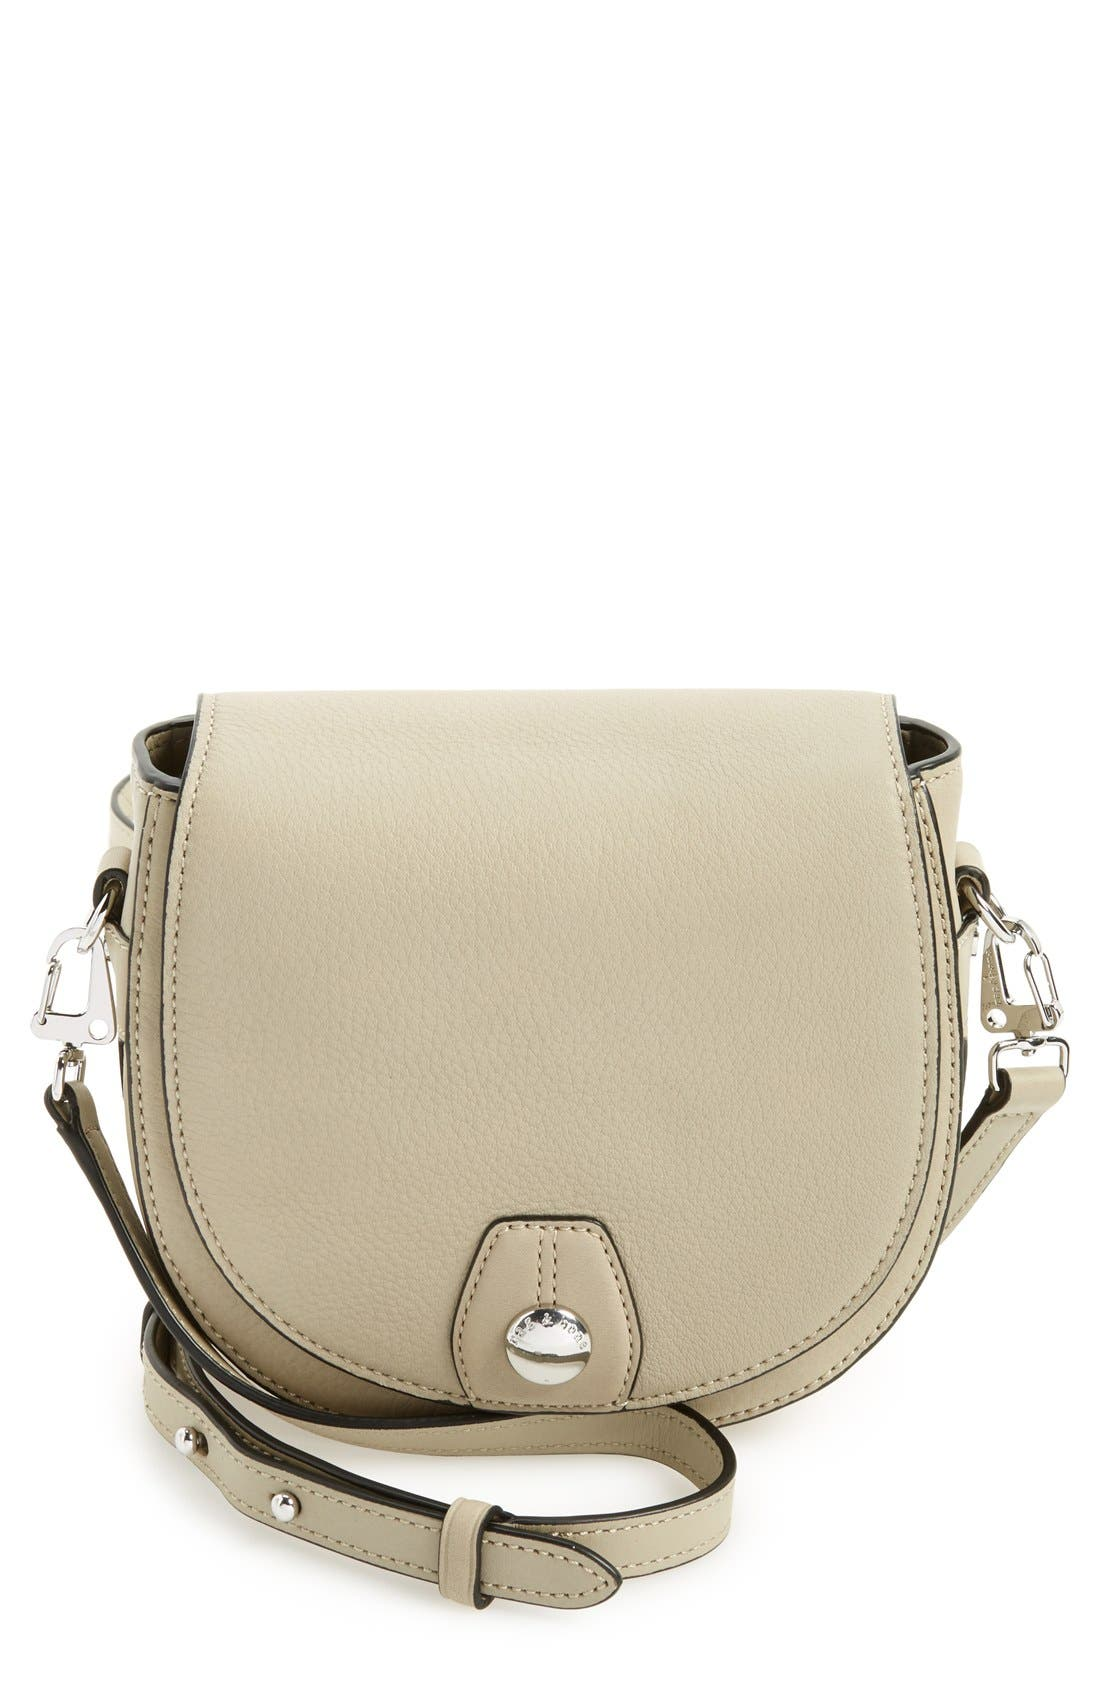 Alternate Image 1 Selected - rag & bone 'Mini Flight' Leather Crossbody Saddle Bag